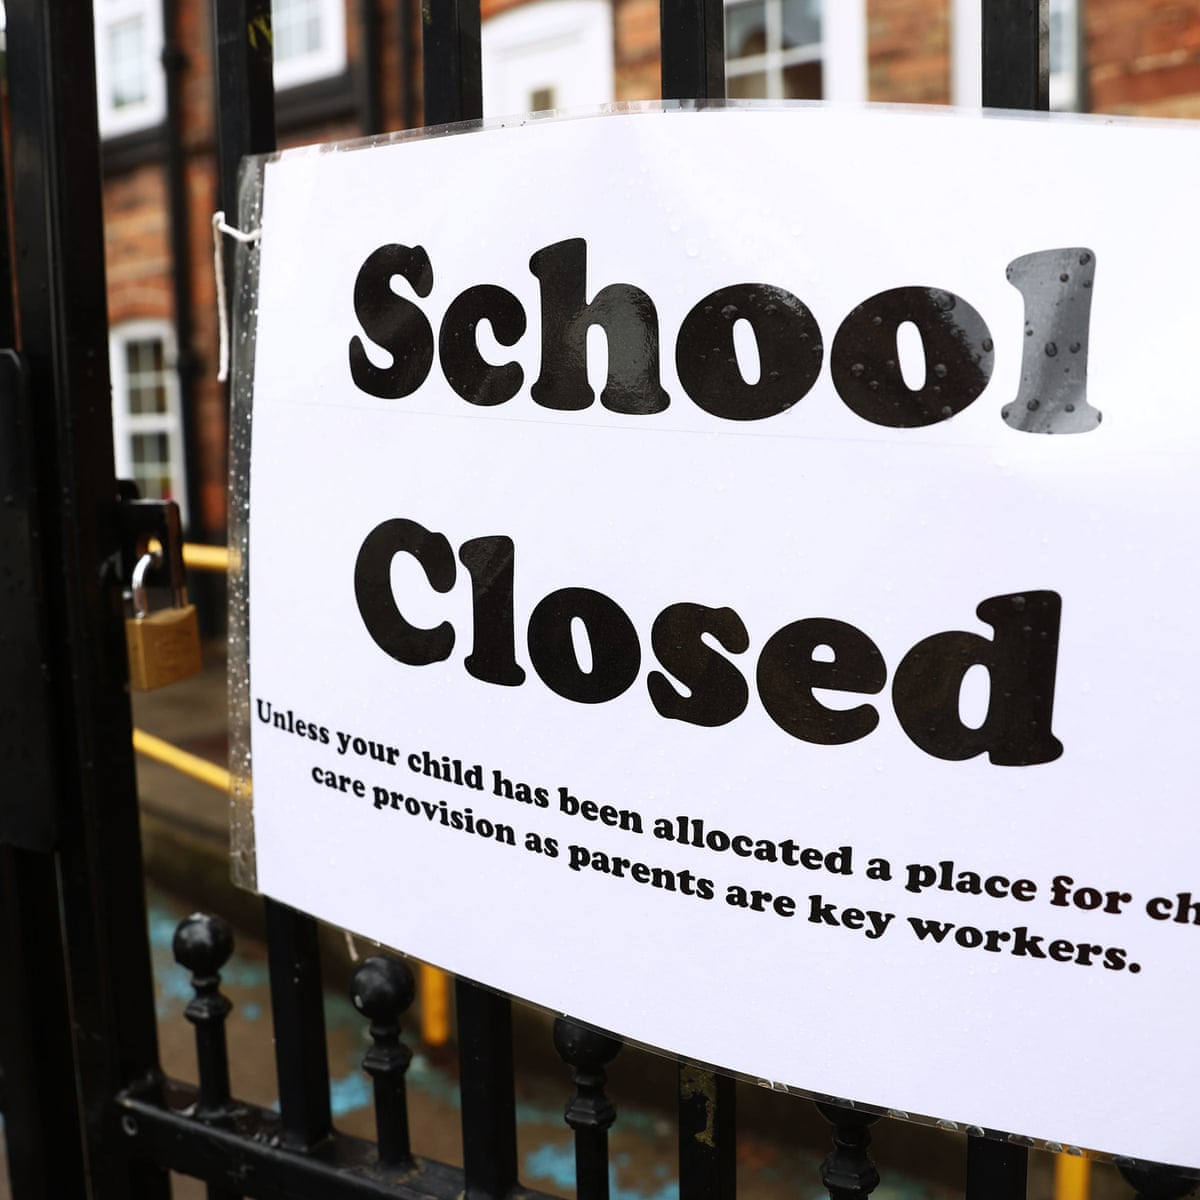 Greenwich Schools To Close After Exponential Growth Of Covid In London Borough Coronavirus The Guardian